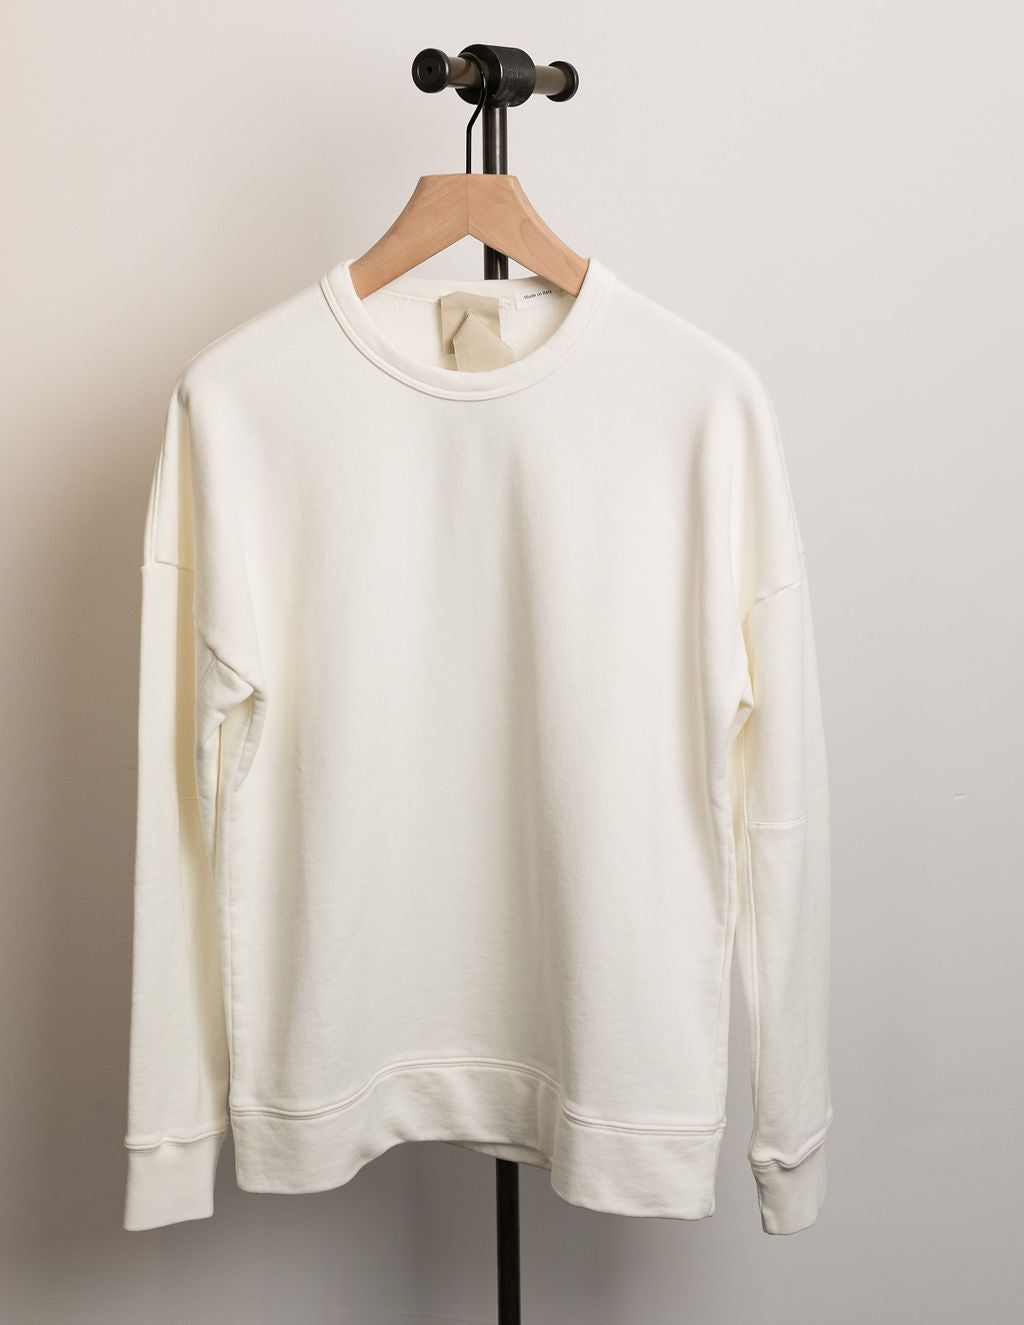 TEN-C-Knit-Long-Sleeve-Crewneck-Sweatshirt-White